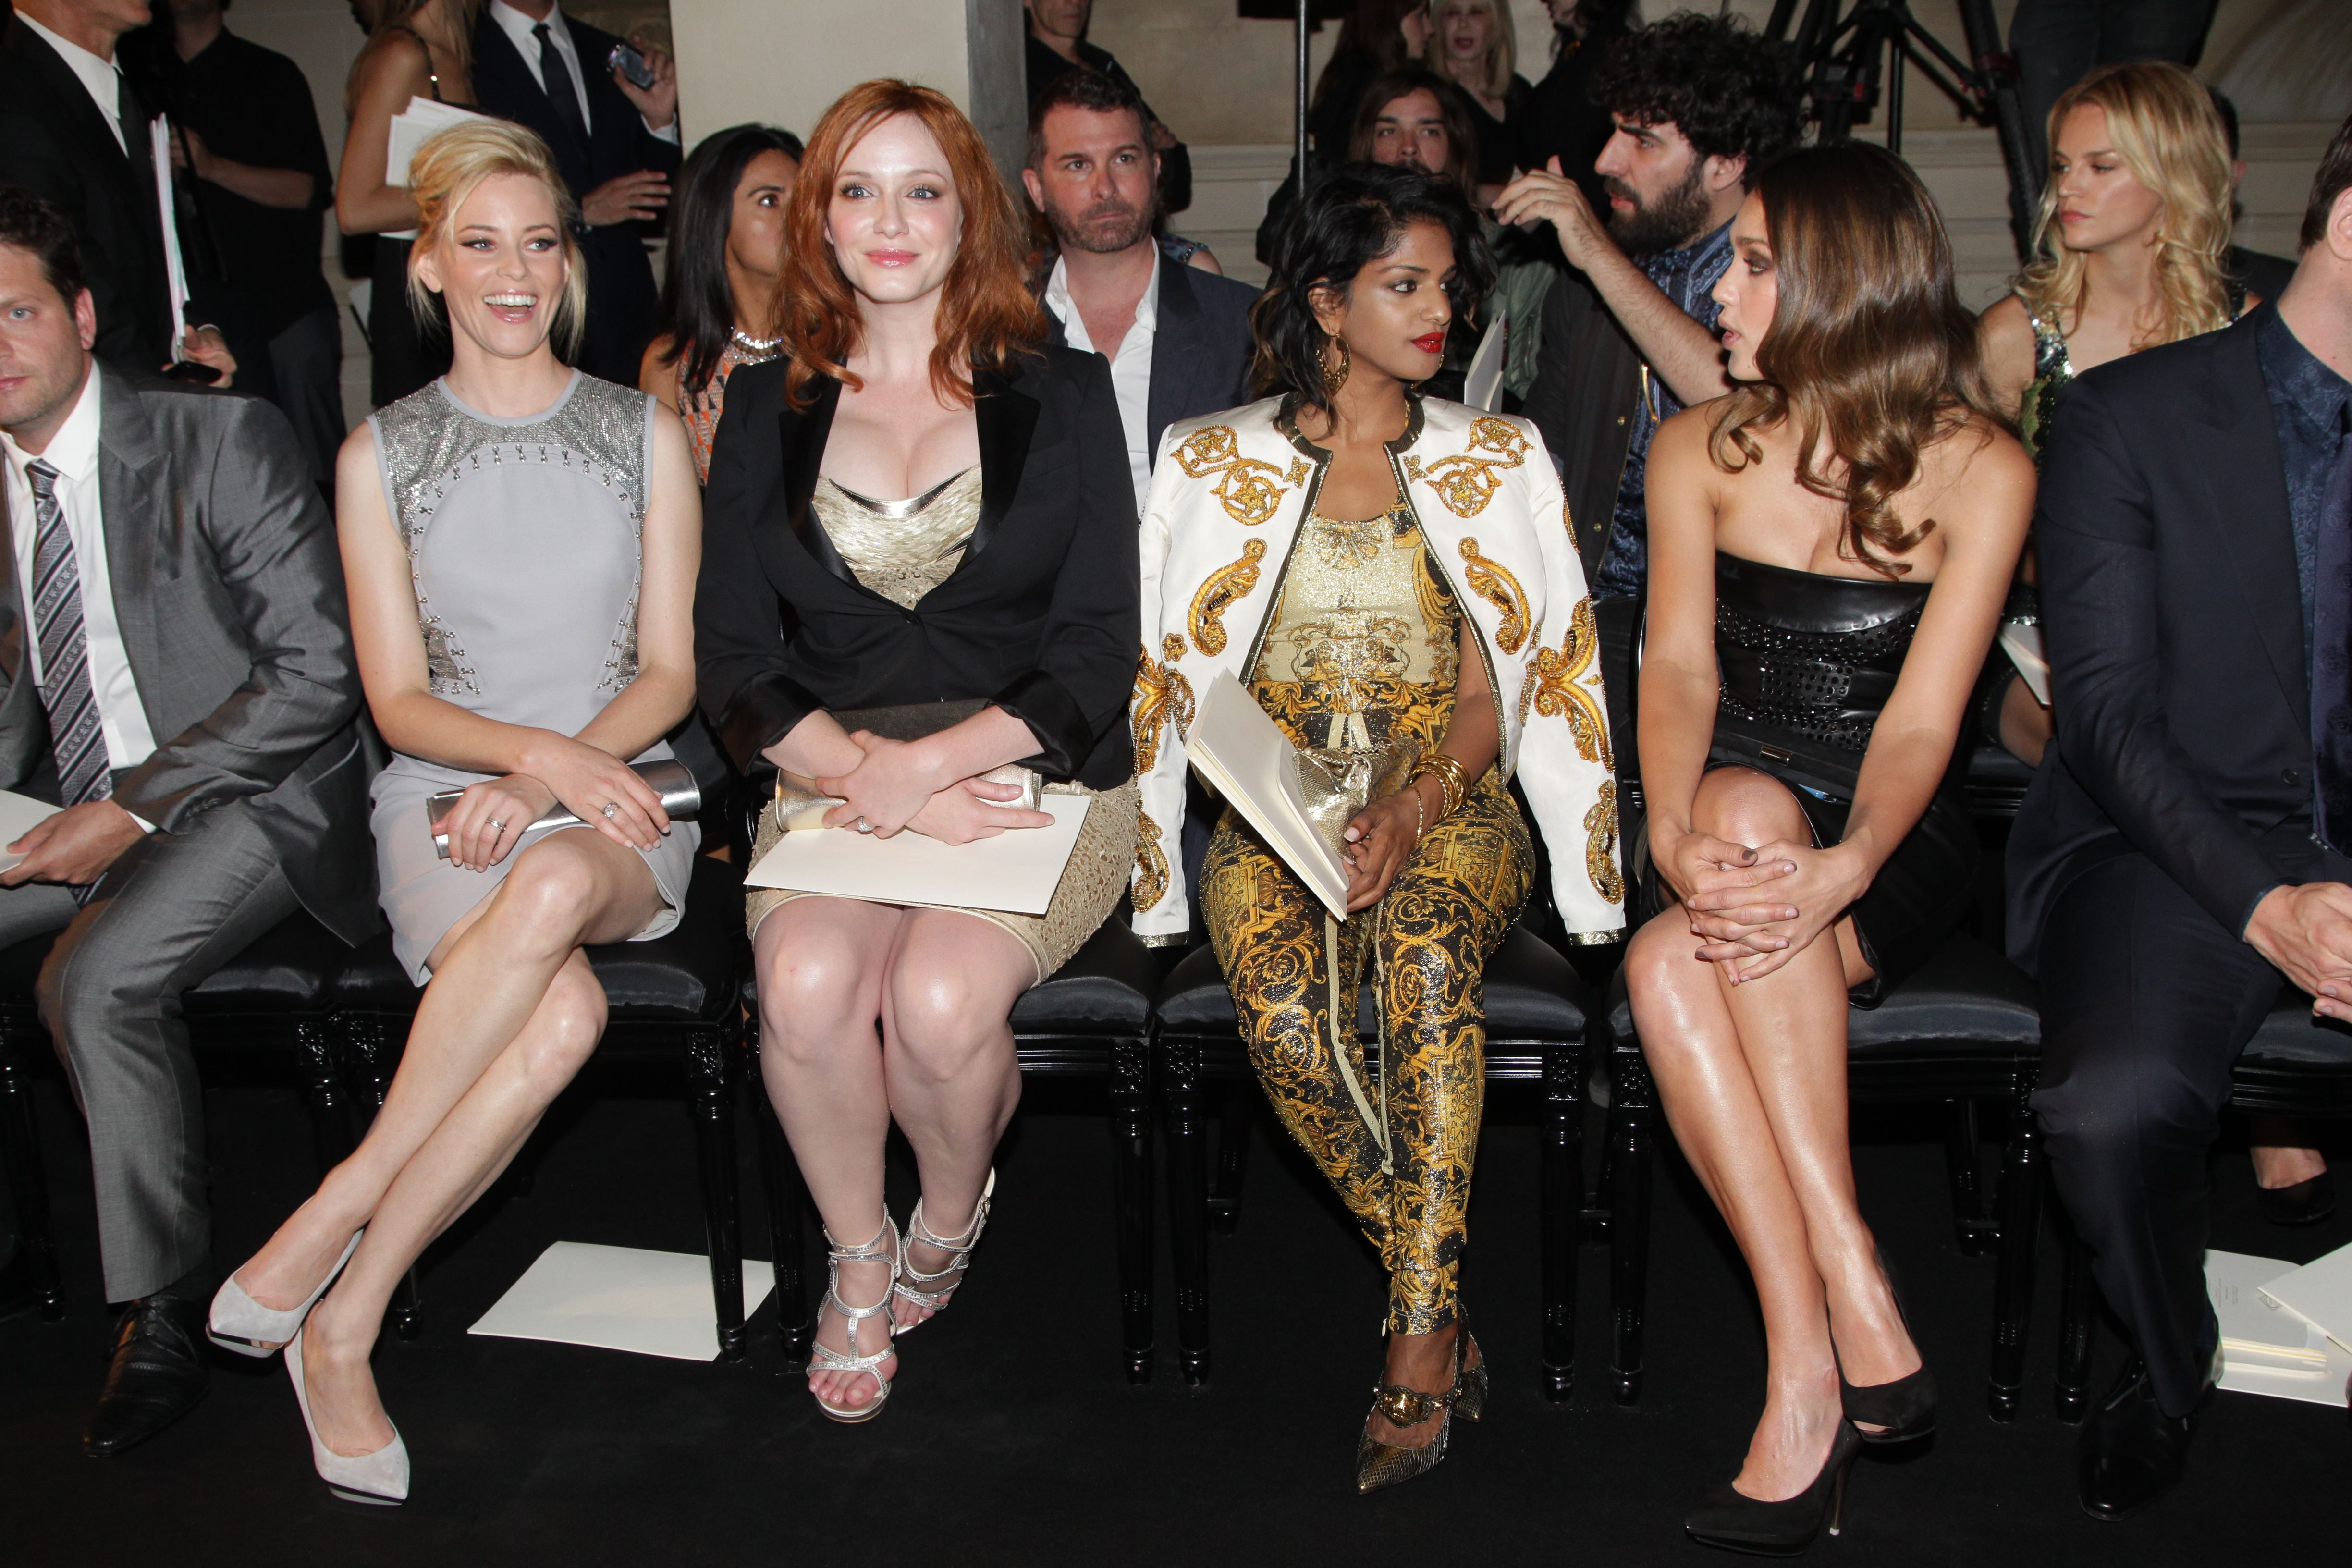 Elizabeth Banks, Christina Hendricks, M.I.A., and Jessica Alba got together at the Versace fashion show in Paris.